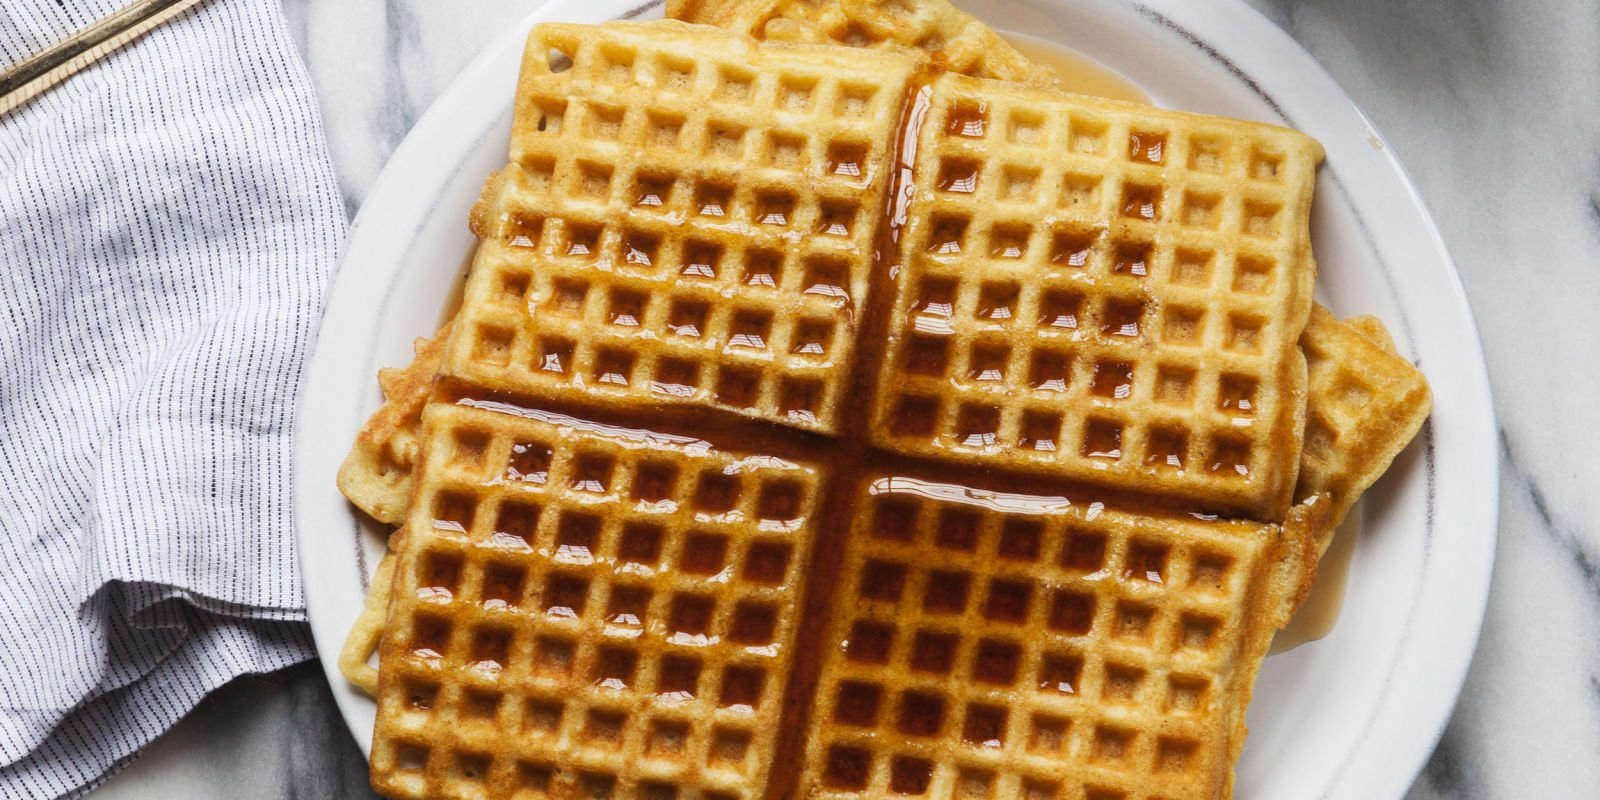 What Color Are Waffles Naturally